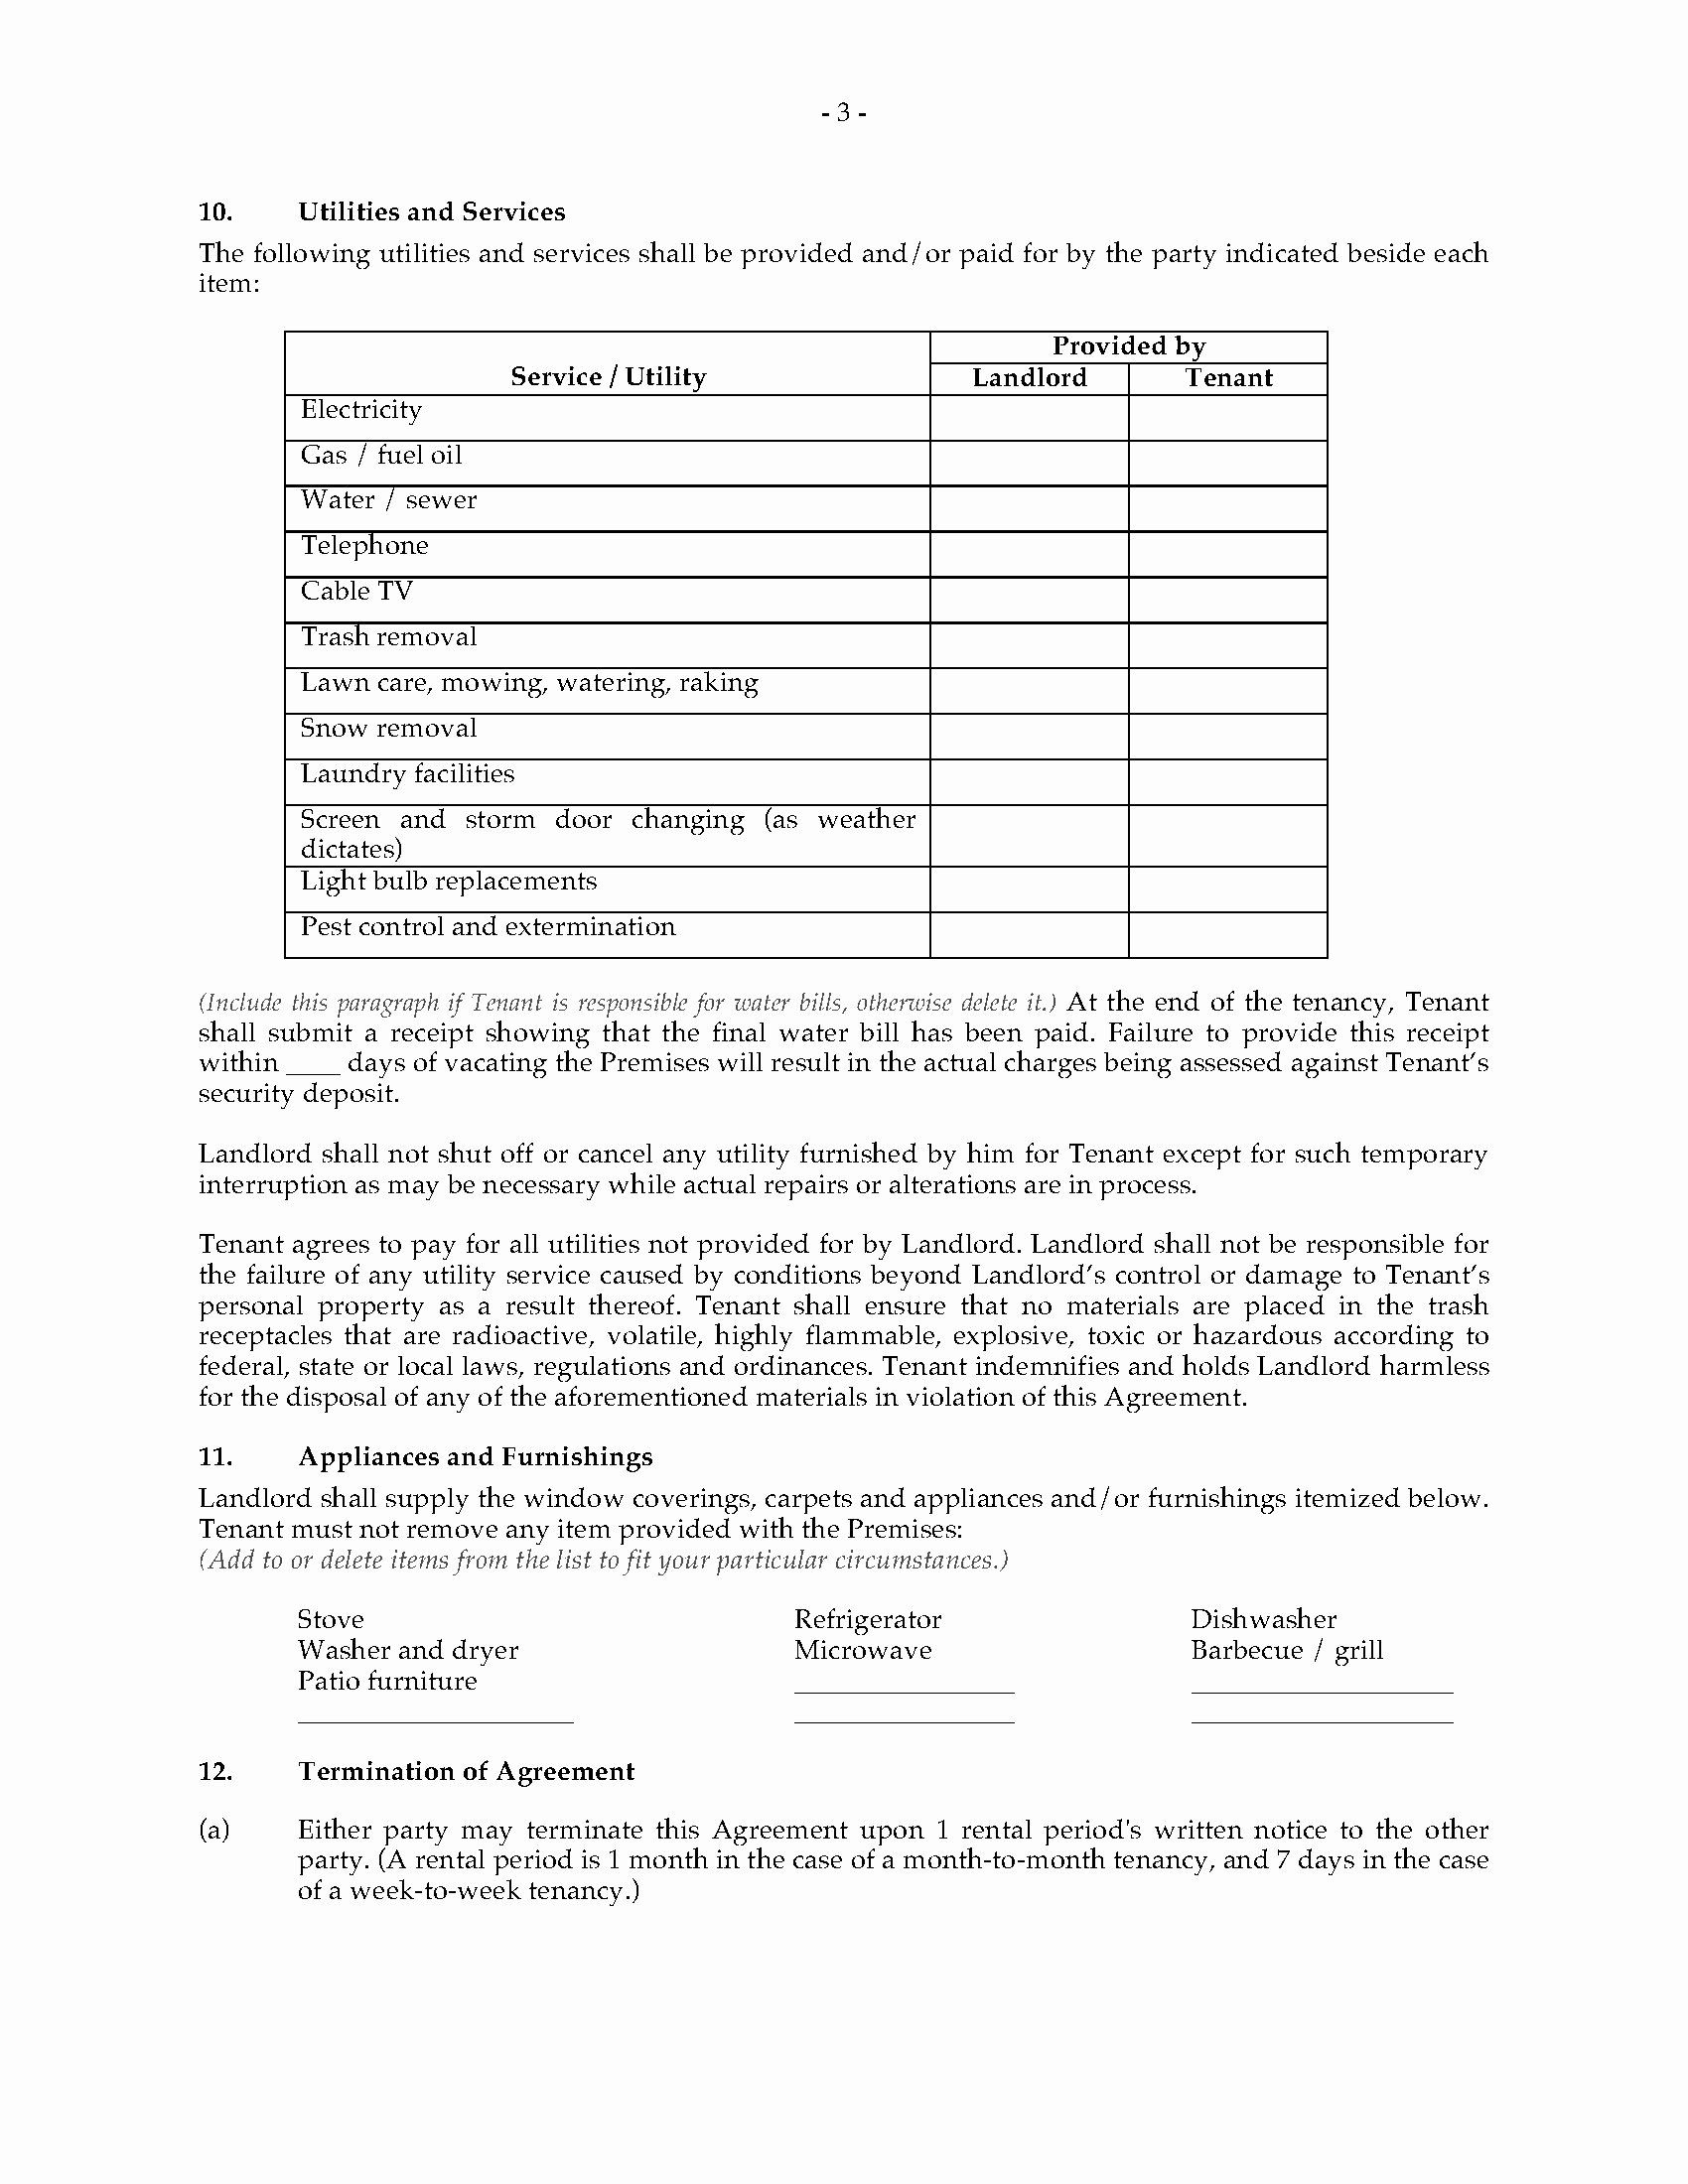 Weekly Rental Agreement Template Lovely Michigan Rental Agreement Monthly Or Weekly Rental Agreement Templates Weekly Rentals Being A Landlord